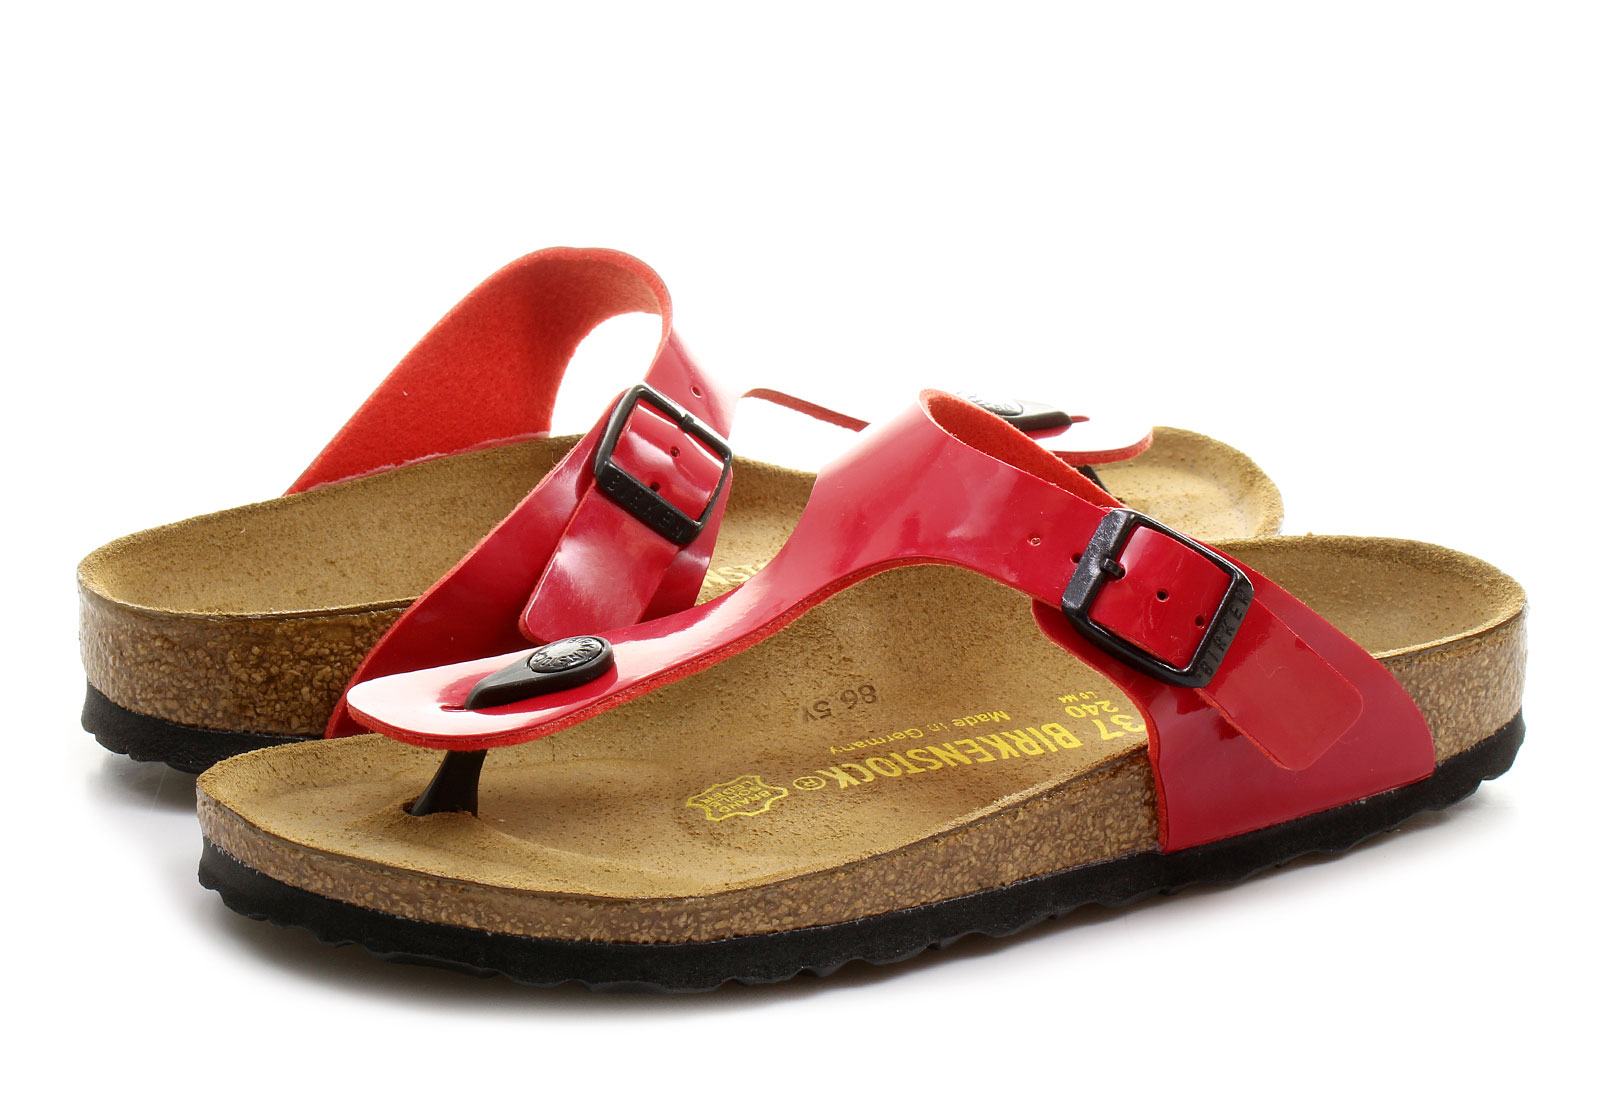 7a2febf24c48 Birkenstock Madrid Sale Dames Athletic Sandal. birkenstock madrid eva